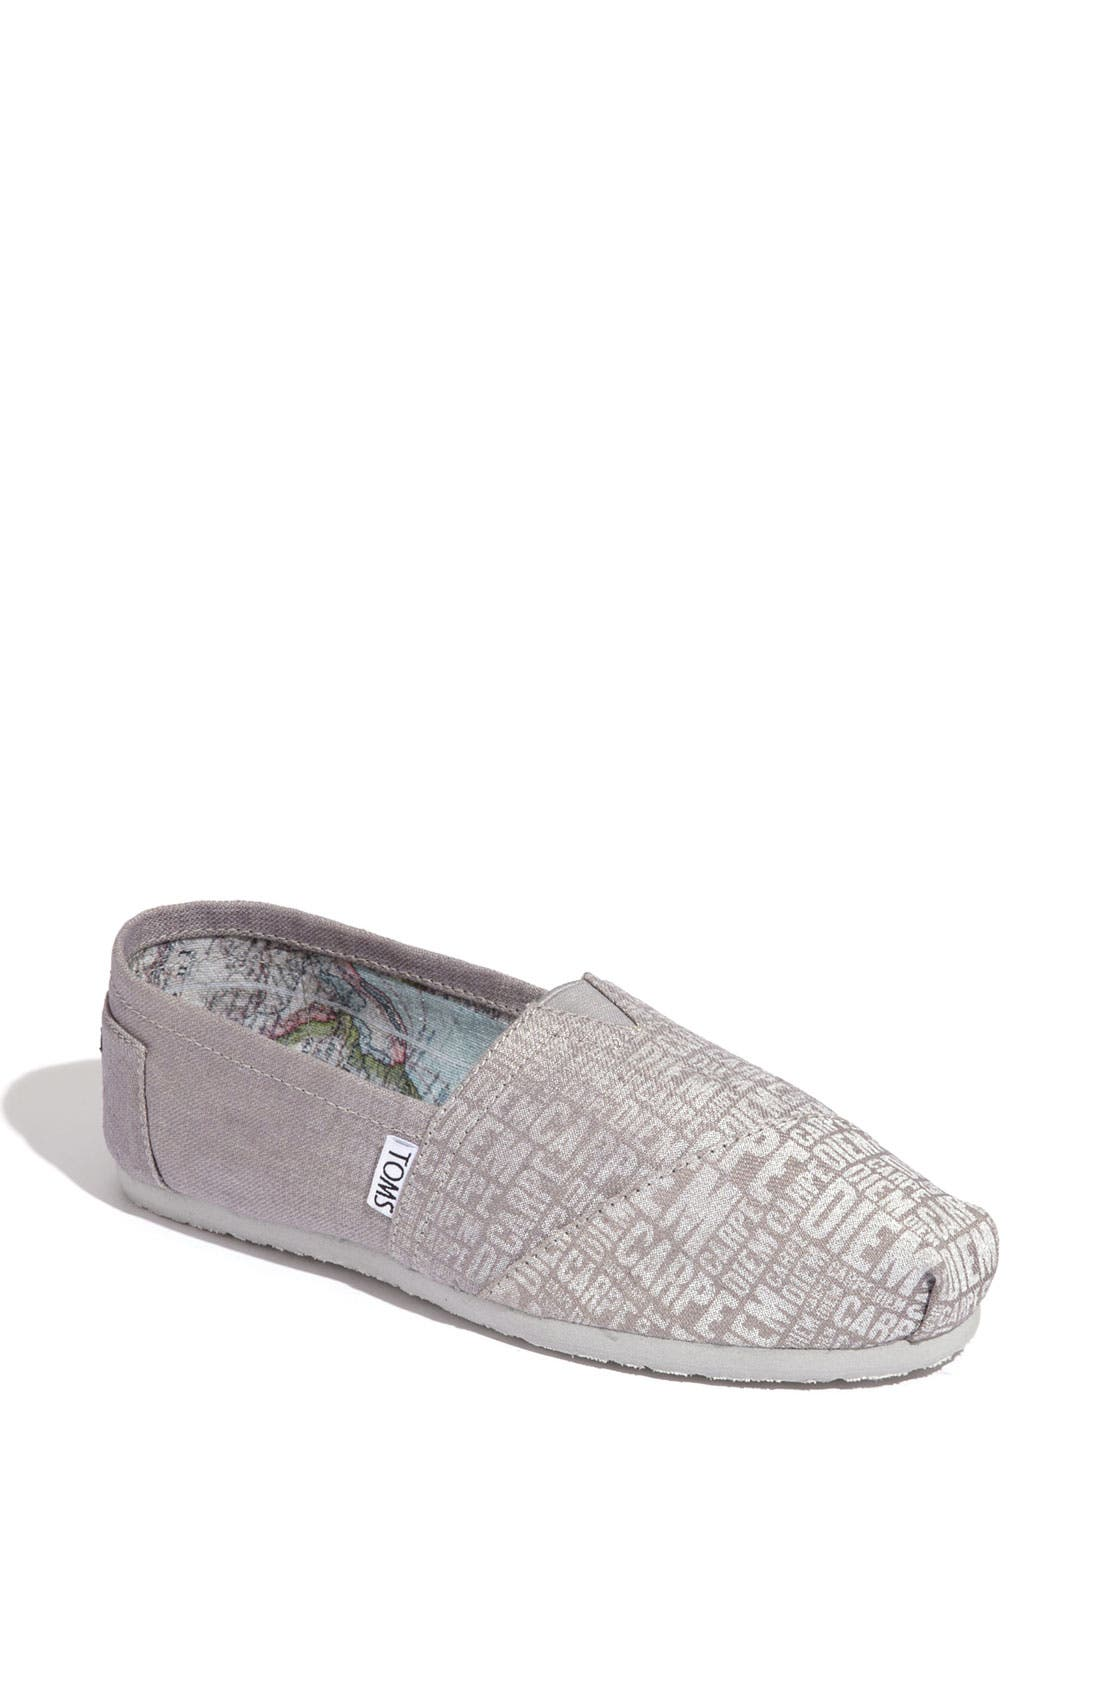 Main Image - TOMS 'Classic - Carpe Diem' Canvas Slip-On (Women)